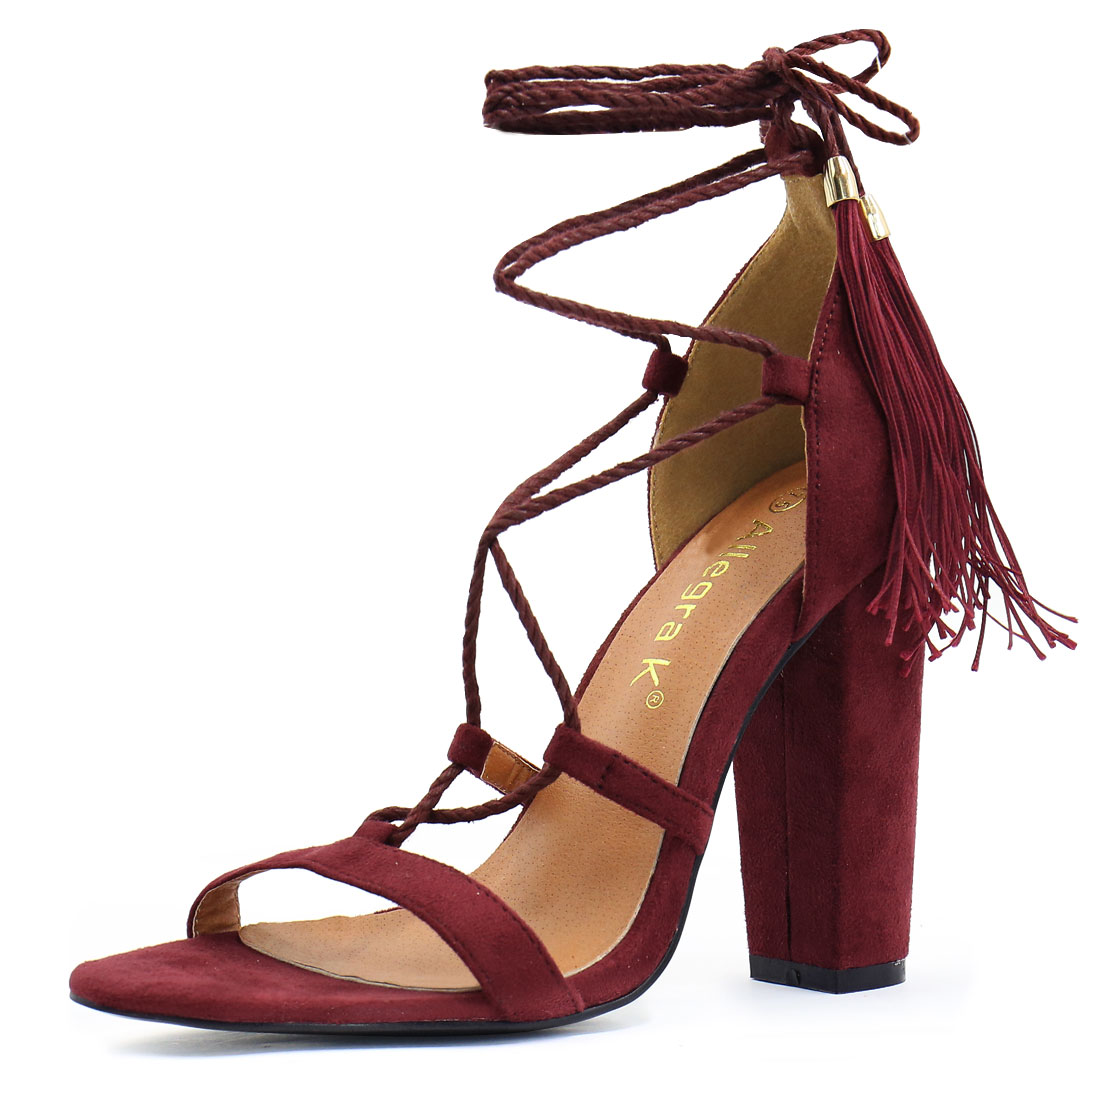 Women Chunky High Heel Tassel Closure Lace Up Sandals Wine US 7.5